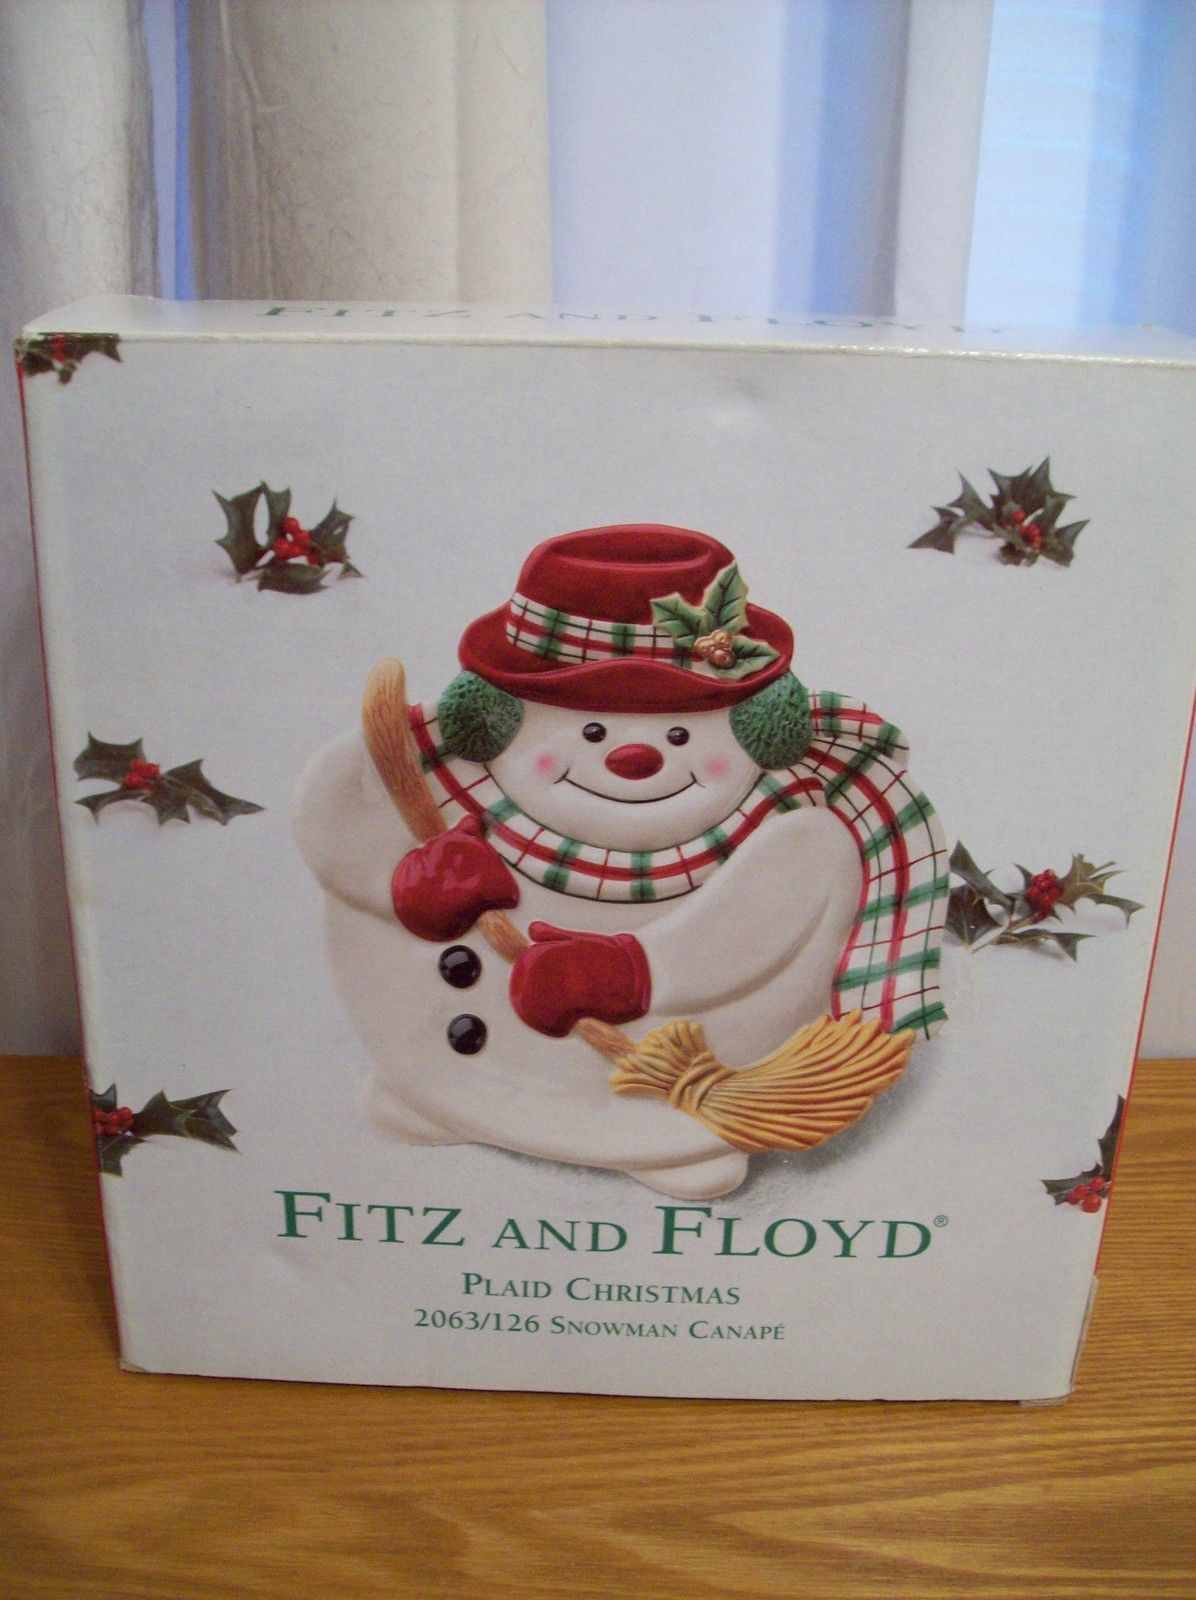 fitz and floyd plaid christmas snowman canape plate. Black Bedroom Furniture Sets. Home Design Ideas